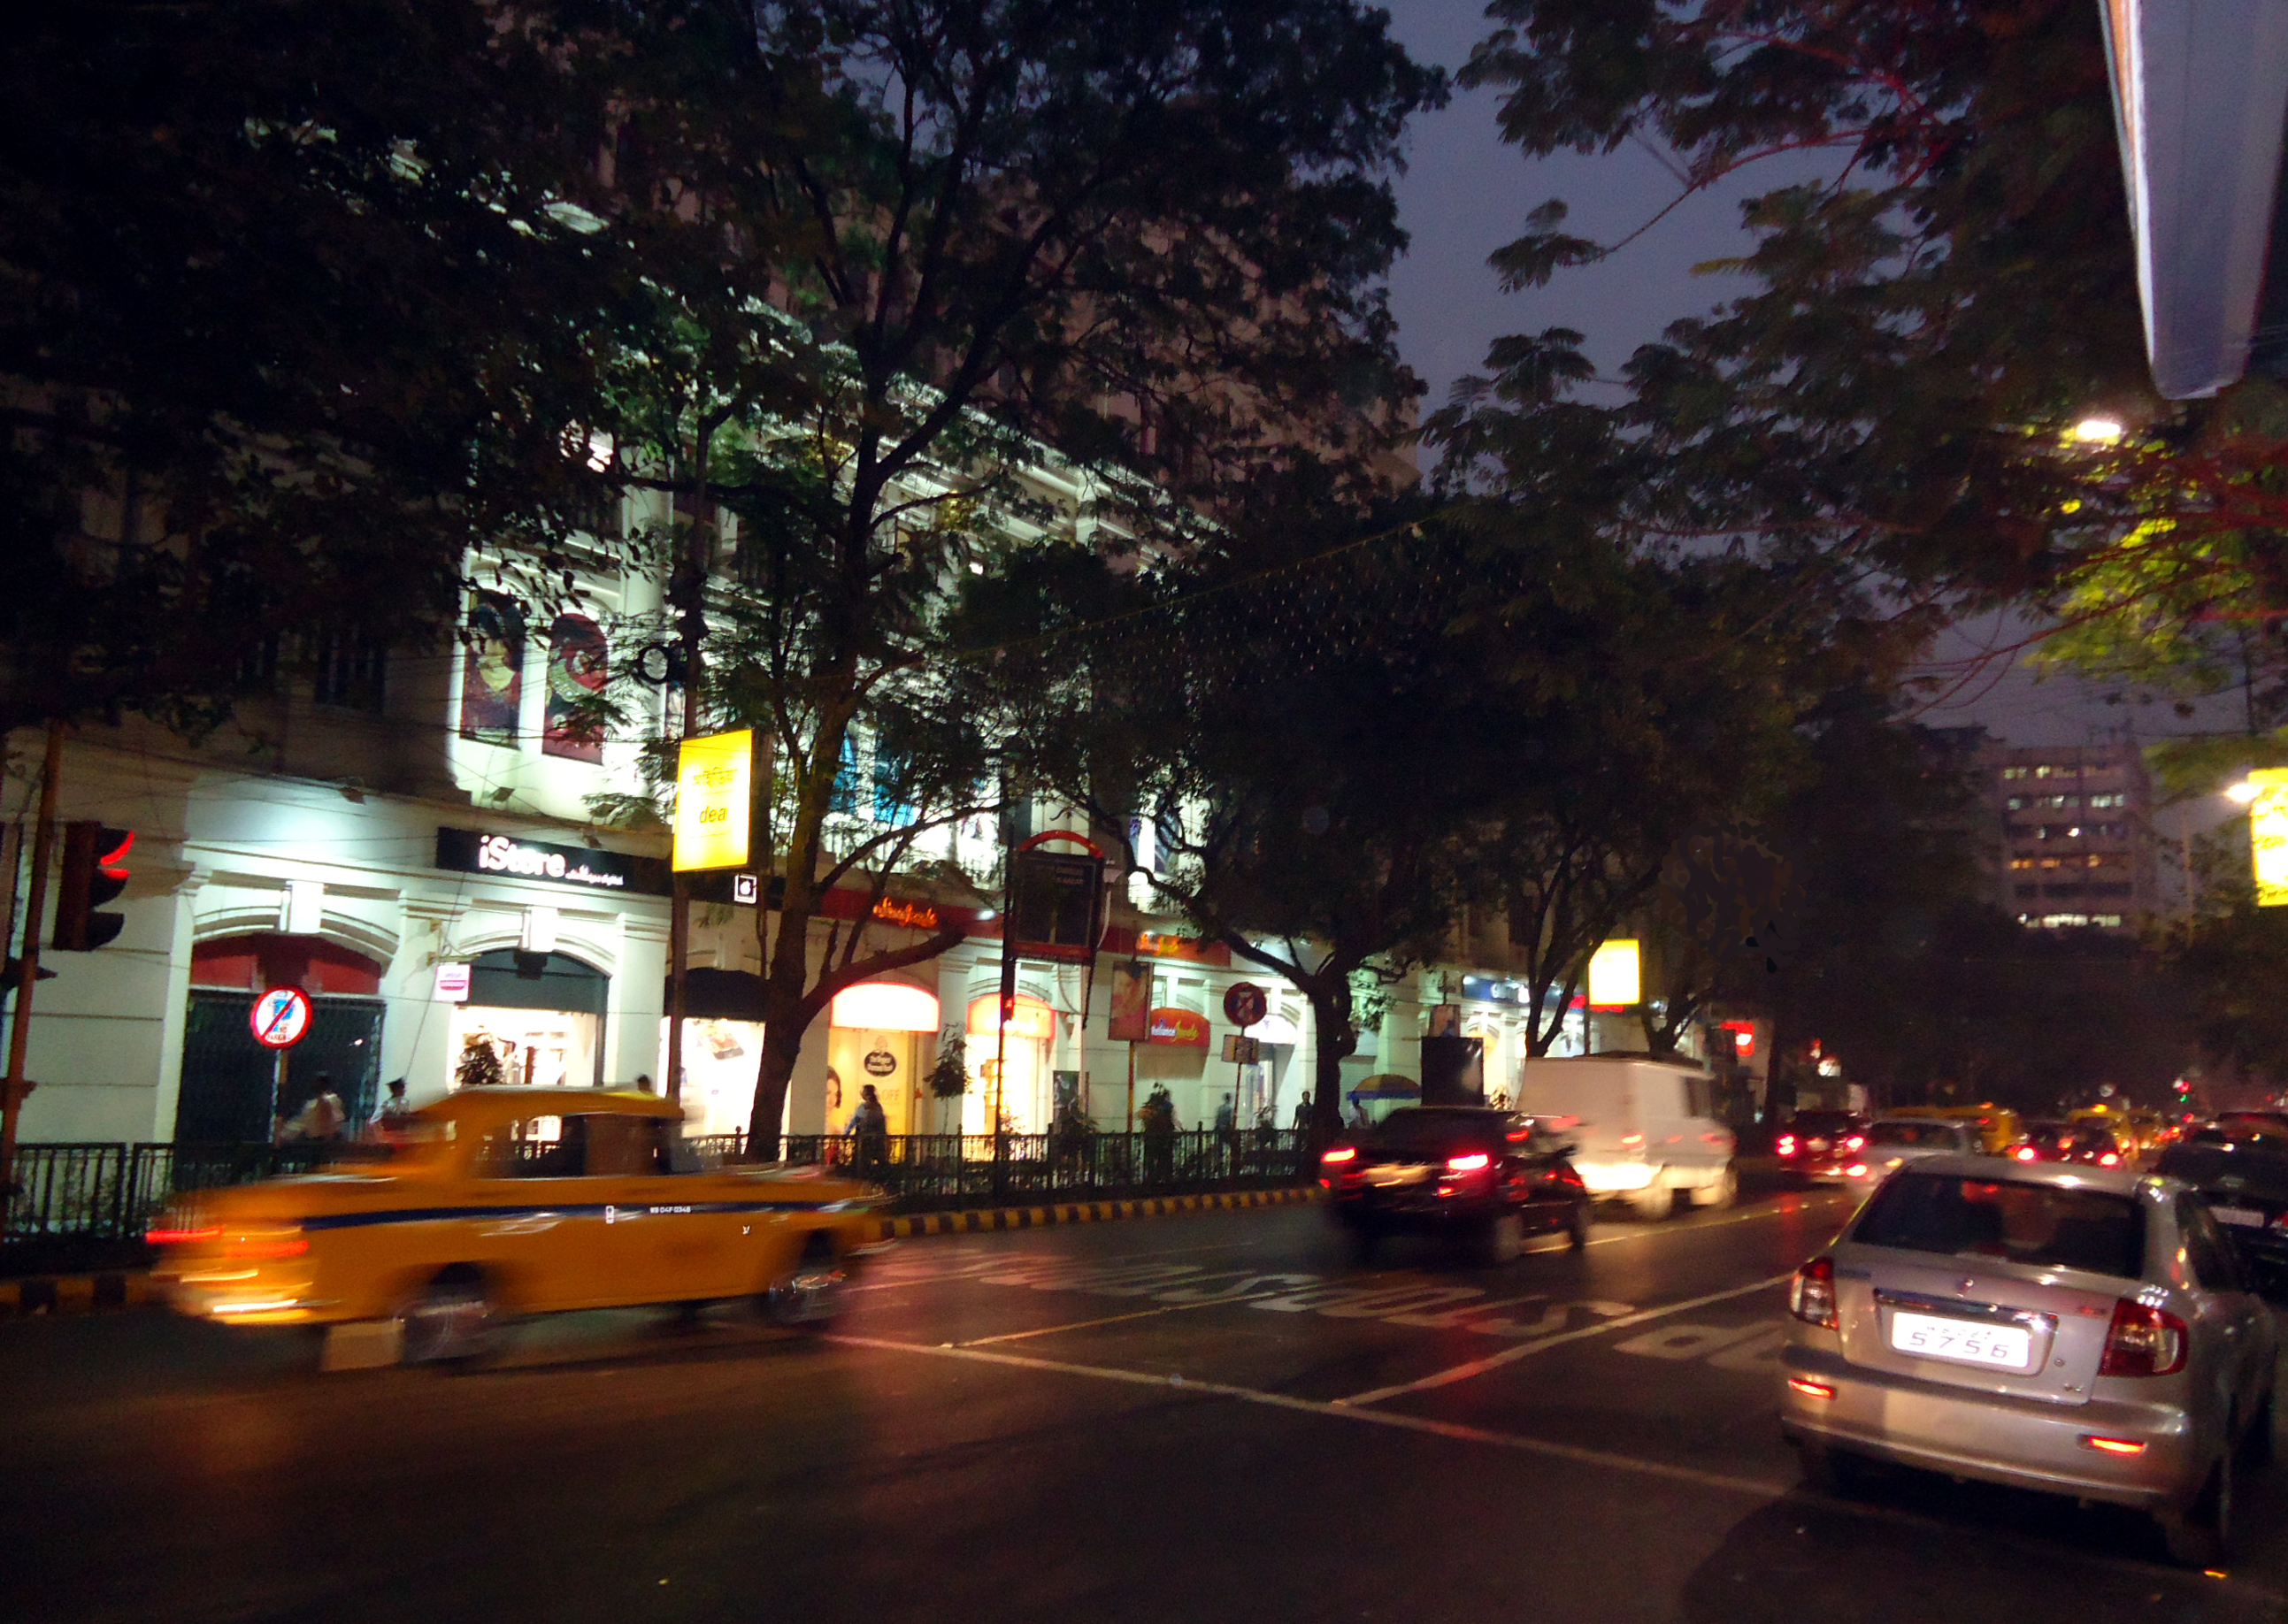 File:Park Street nights 1.JPG - Wikimedia Commons